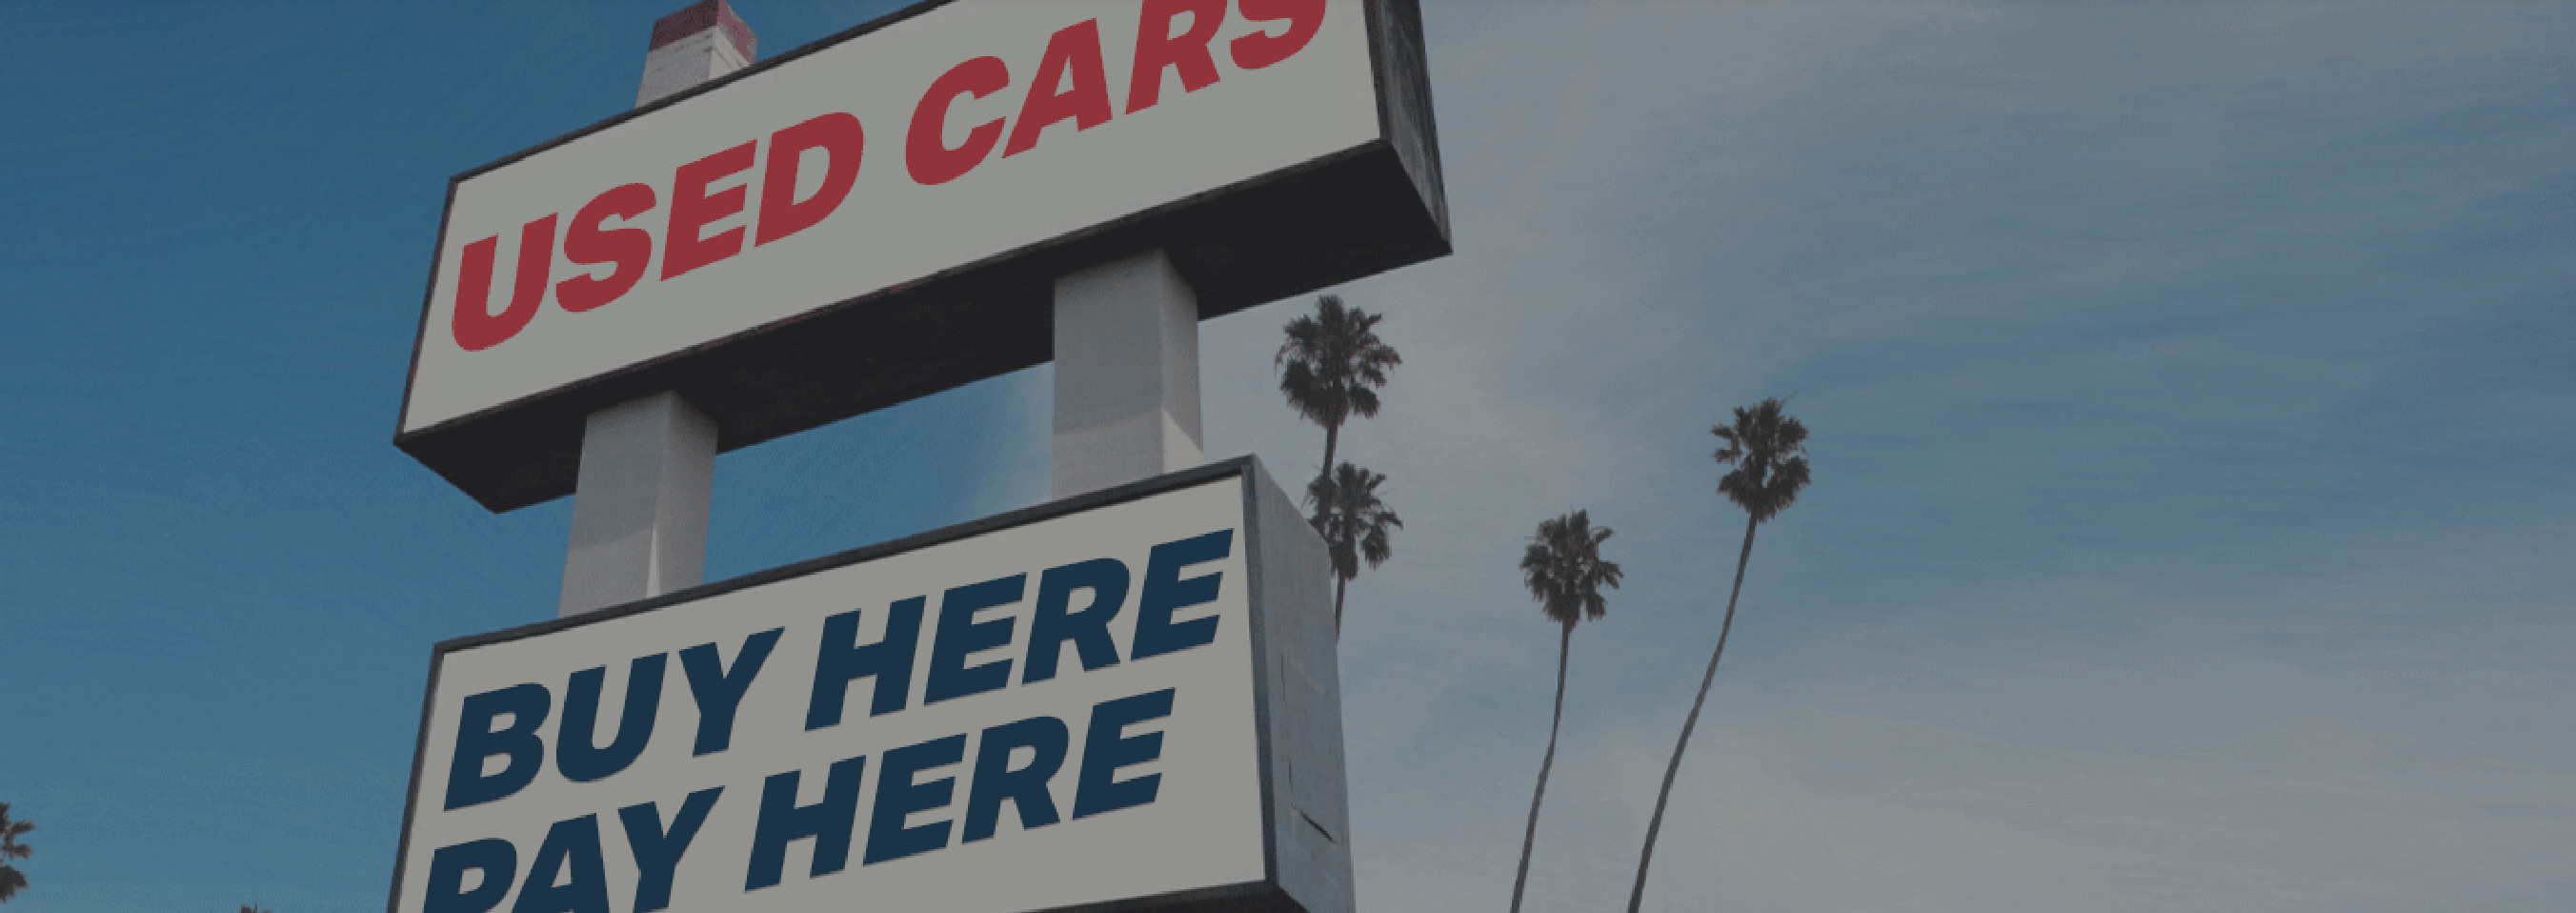 4 Best Practices for Buy Here Pay HereDealerships